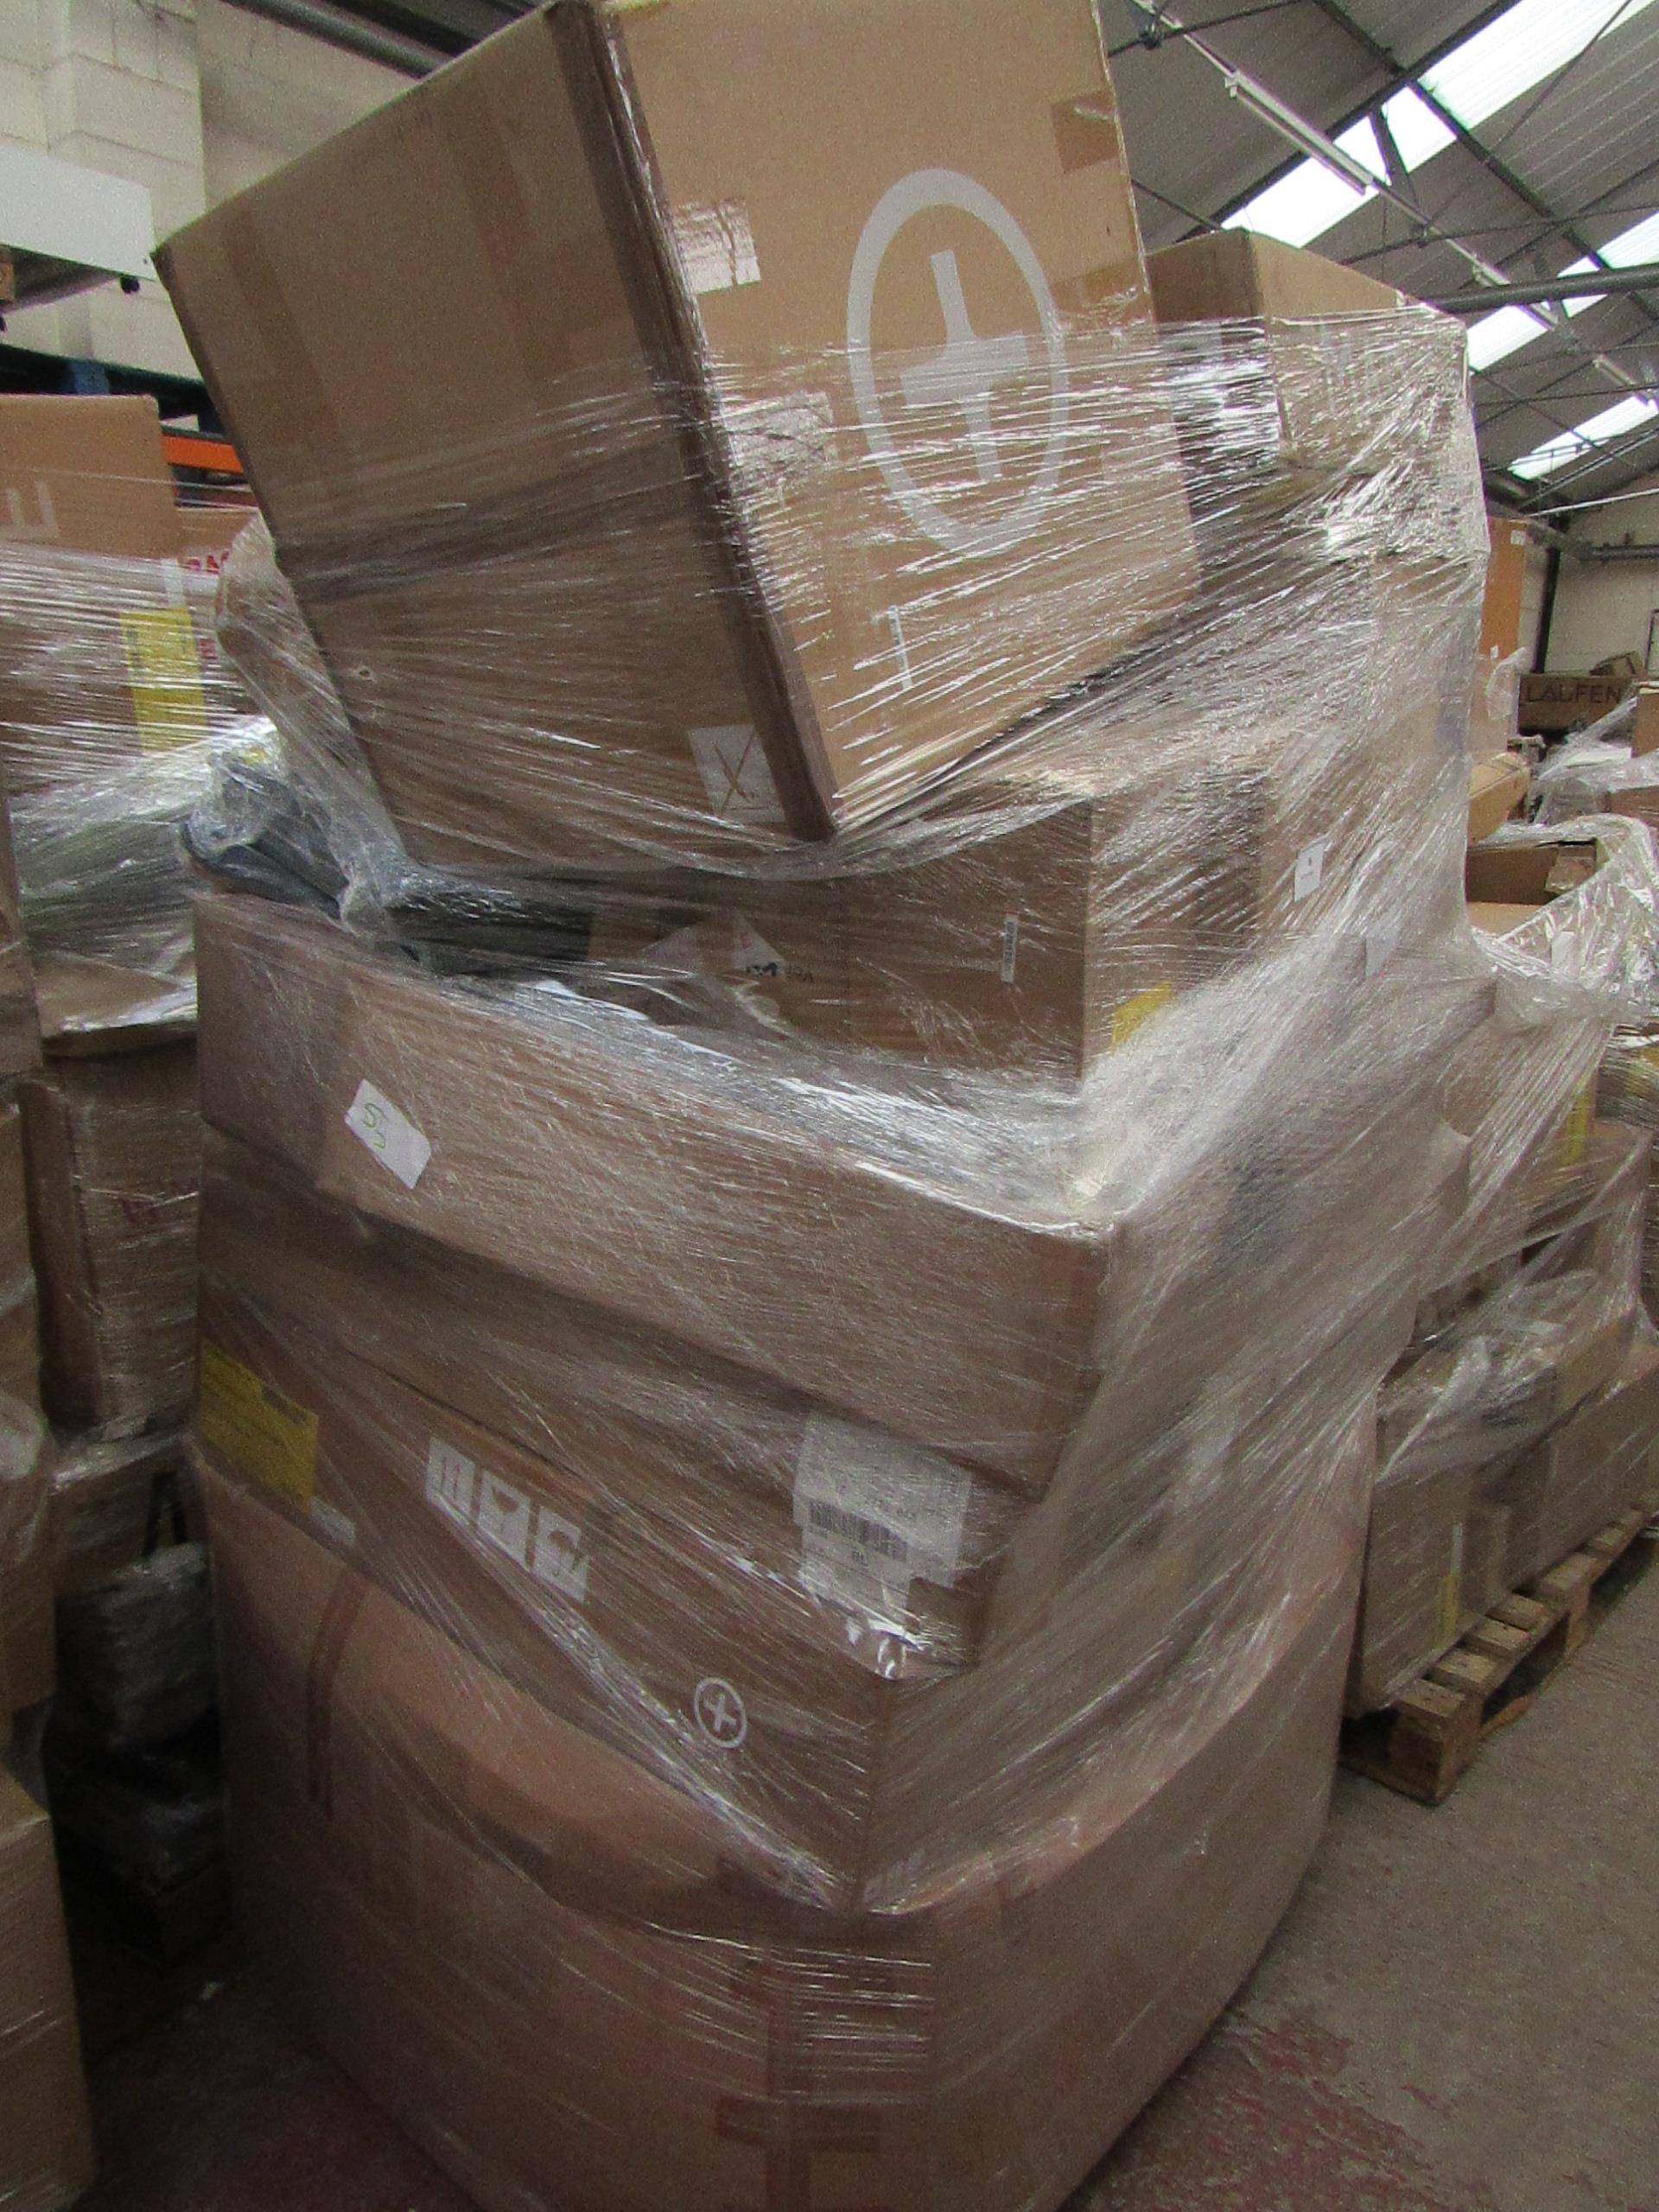   1X   PALLET OF MADE.COM RAW CUSTOMER RETURNS, THE PALLET CAN INCLUDE ITEMS SUCH AS SOFT